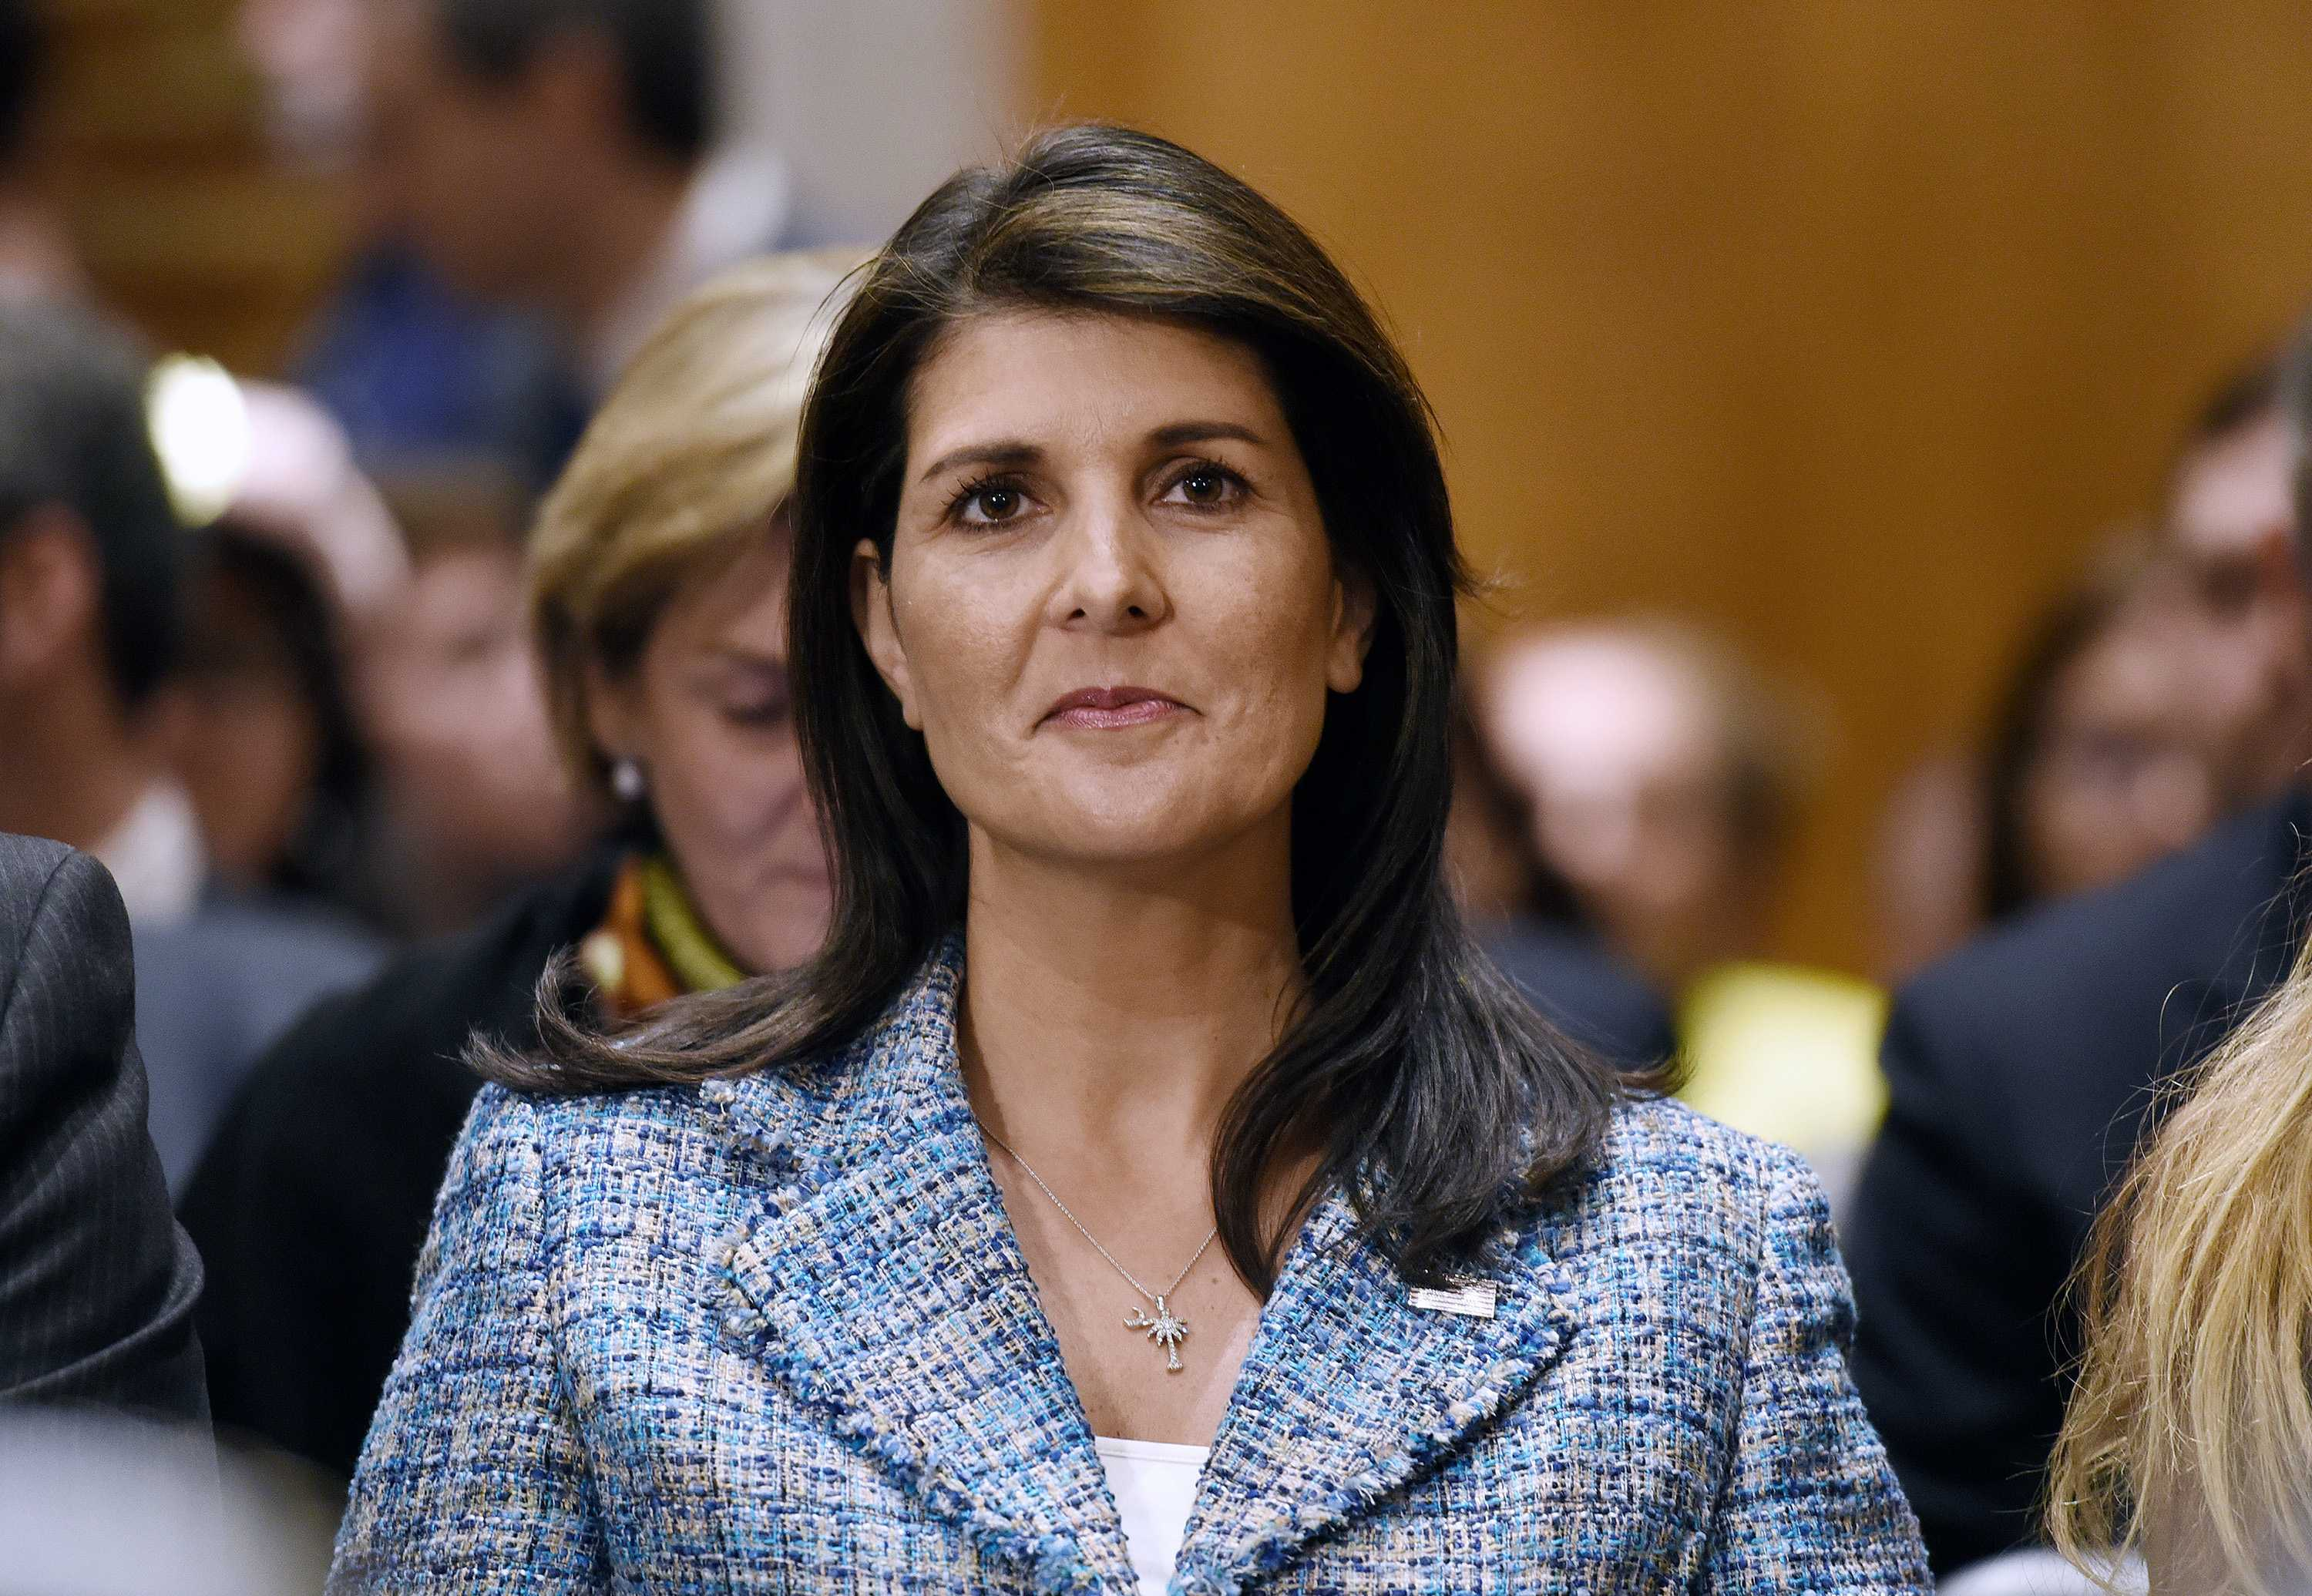 U.N. ambassador Nikki Haley attends Mike Pompeo's confirmation hearing before the Senate Foreign Relations Committee on April 12, 2018 in Washington, D.C. (Olivier Douliery/Abaca Press/TNS)